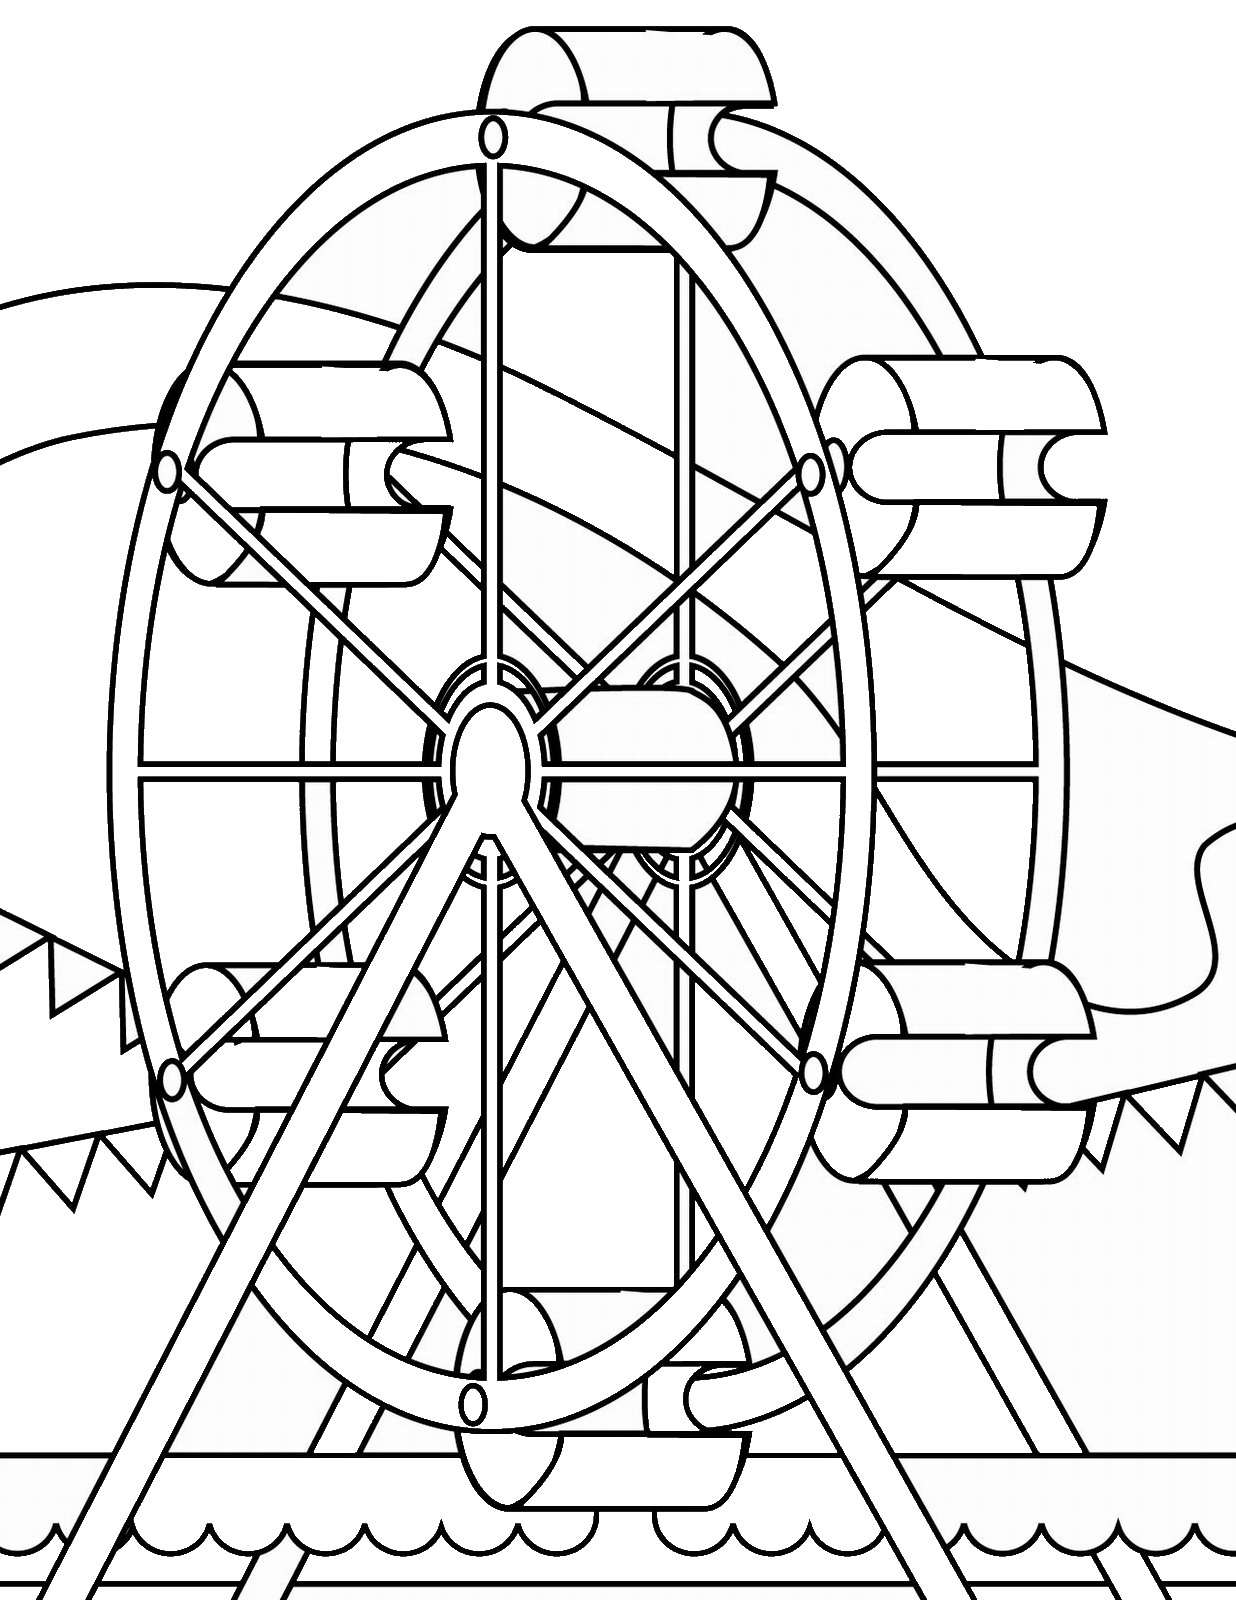 Ferris Wheel Coloring Pages  to Print 5r - Free For Children